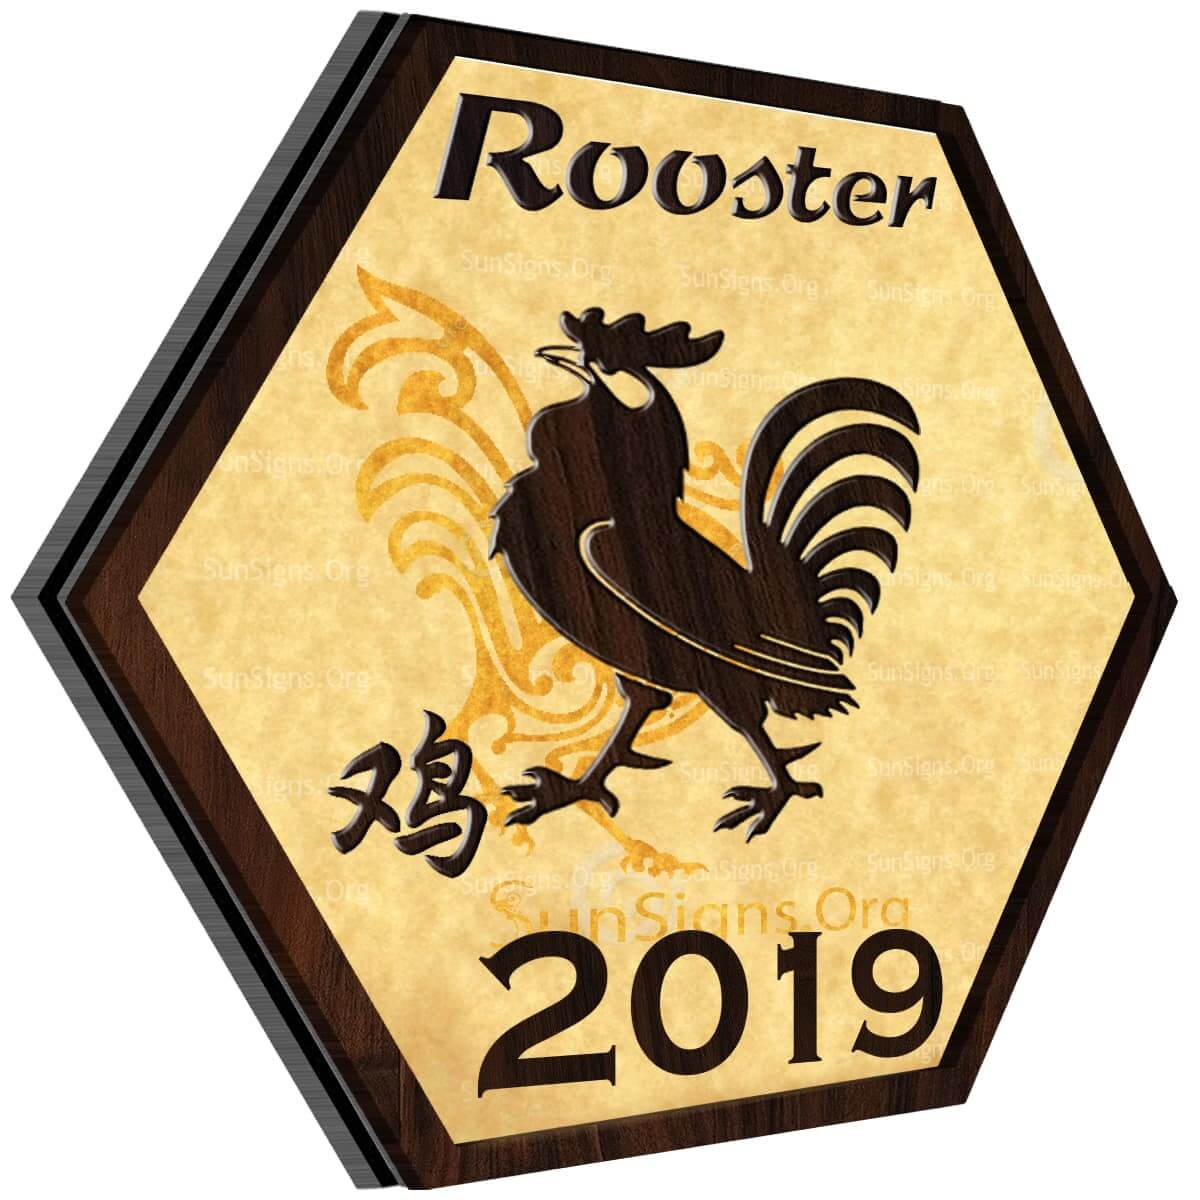 Rooster Horoscope 2019 Predictions For Love, Finance, Career, Health And Family